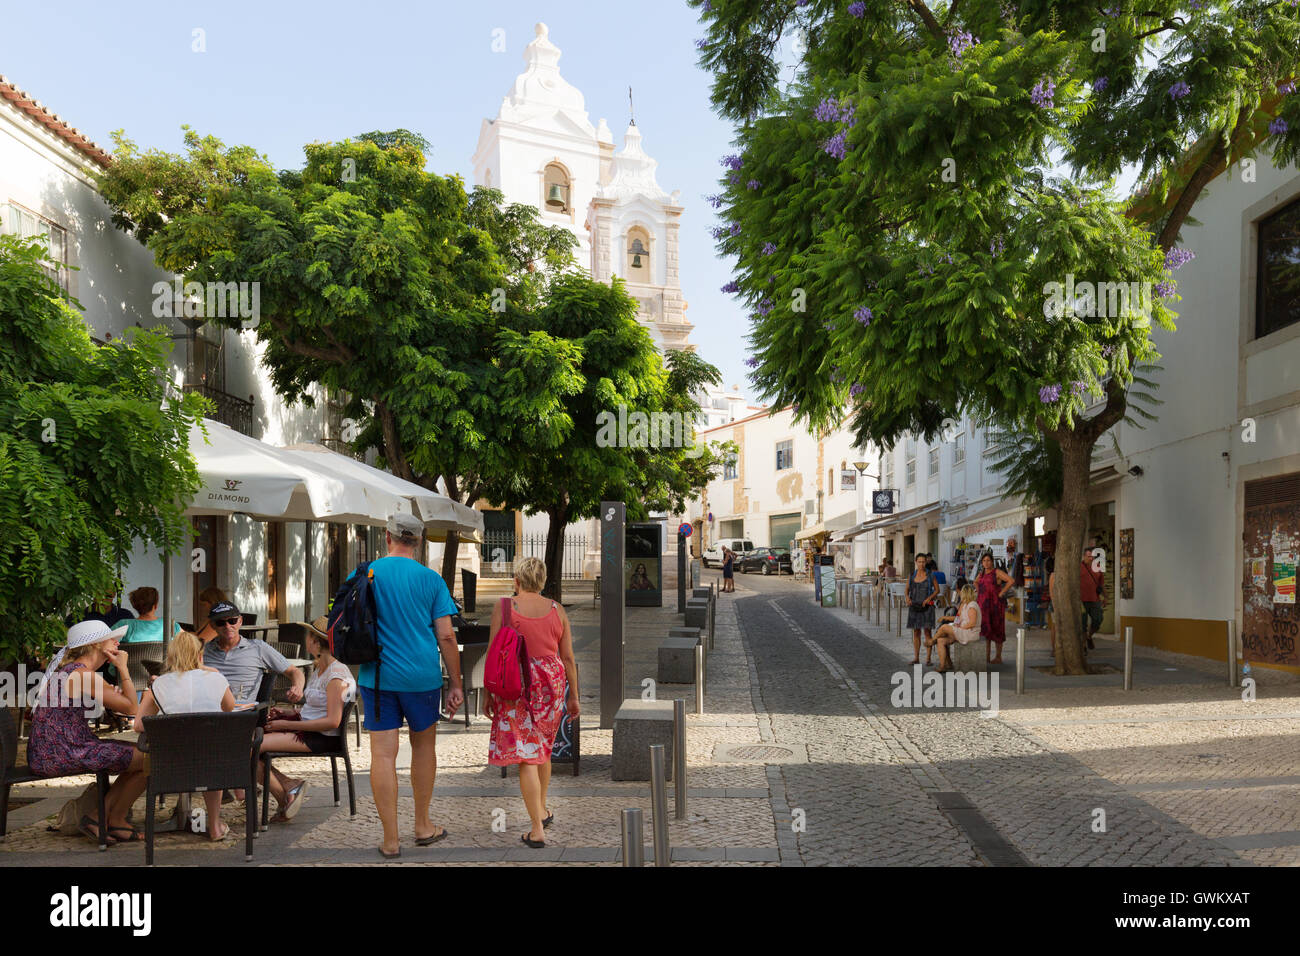 Lagos town centre, Algarve, Portugal, Europe - Stock Image